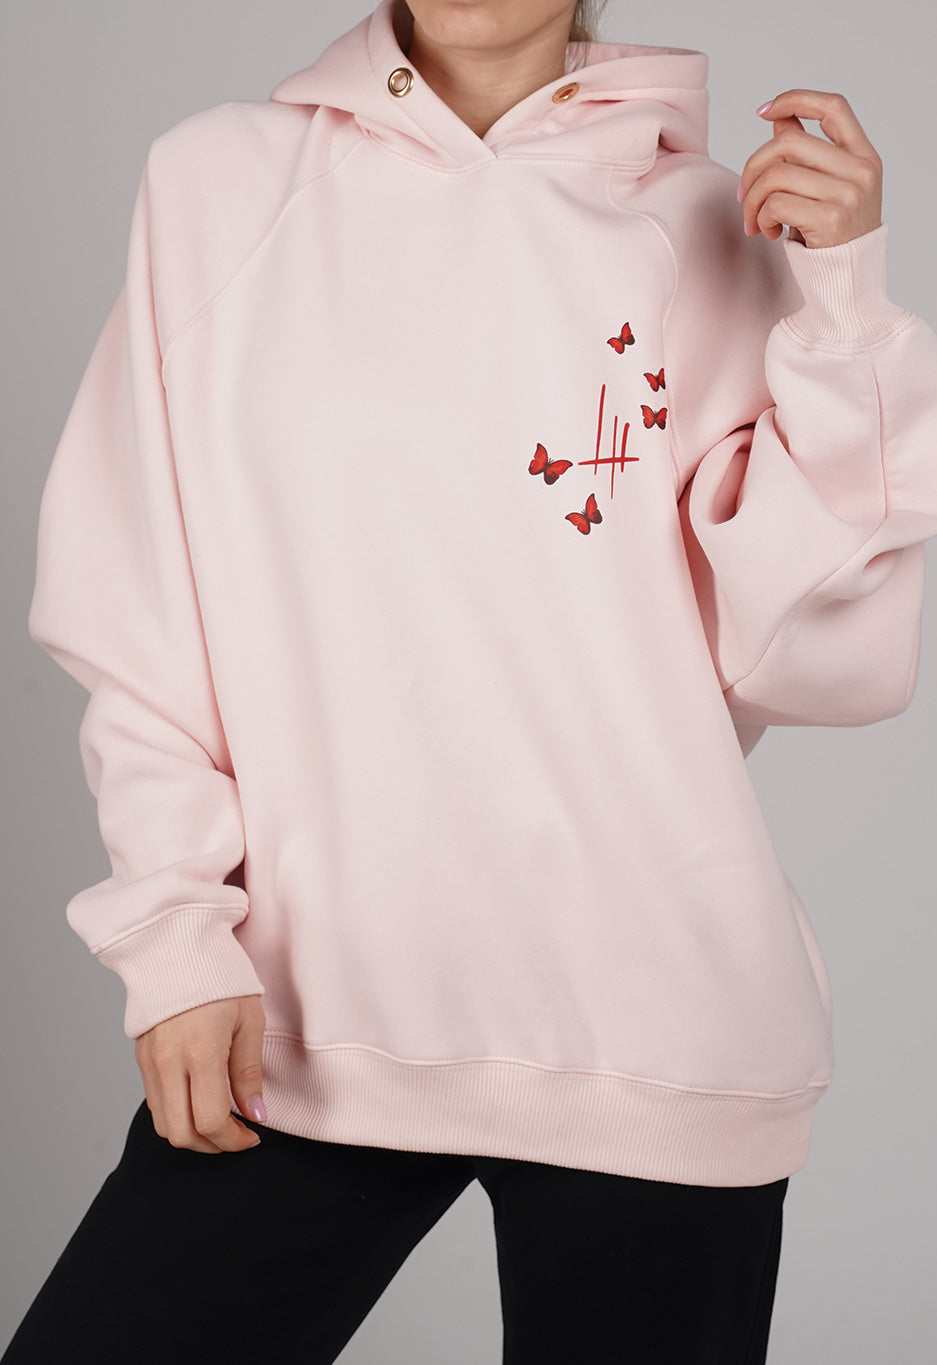 Butterfly Effect Hoodie in Pink - LH x COHL'S